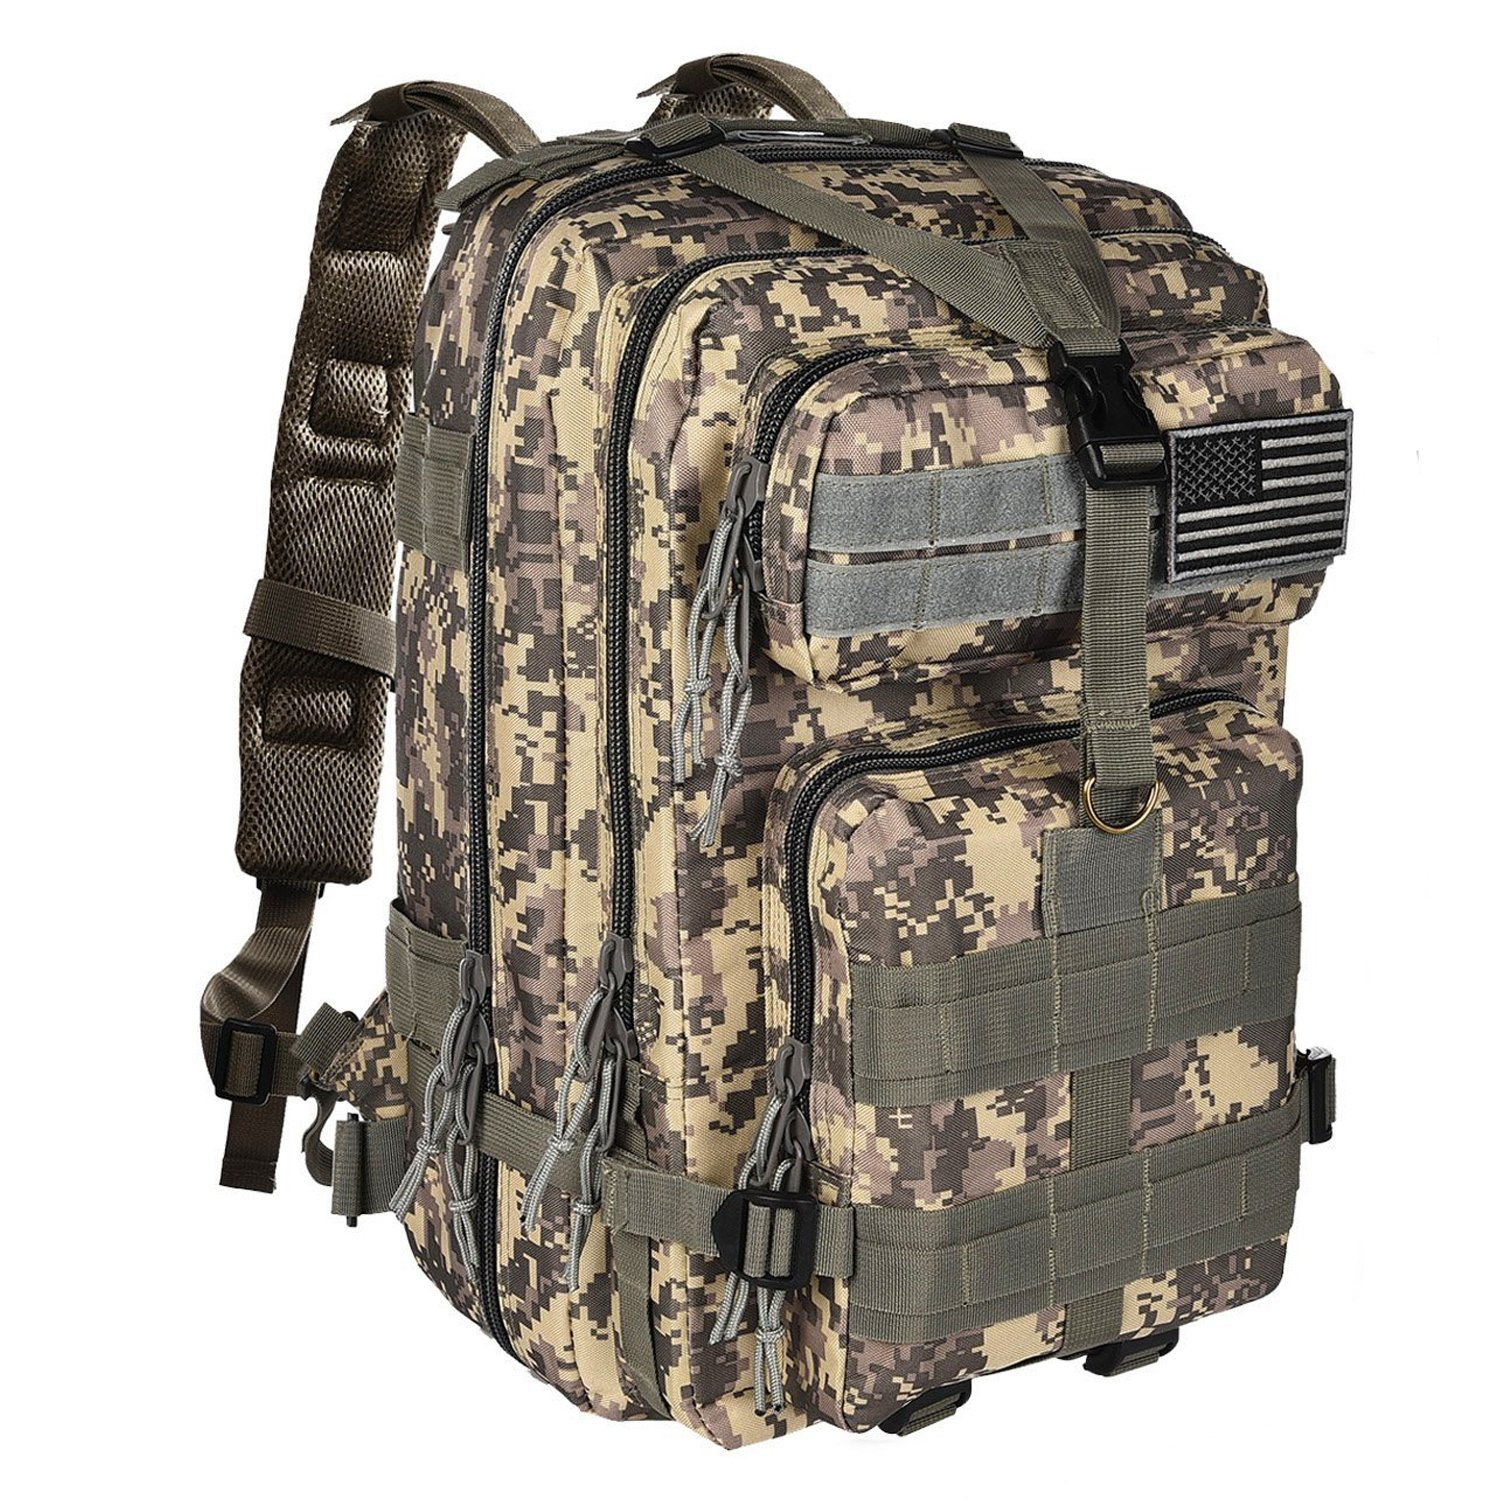 NOOLA 40L Military Tactical Army Backpack 3 Day Pack Molle Bag Backpack Rucksacks for Outdoor Hiking Camping Trekking Hunting with Flag Patch ACU